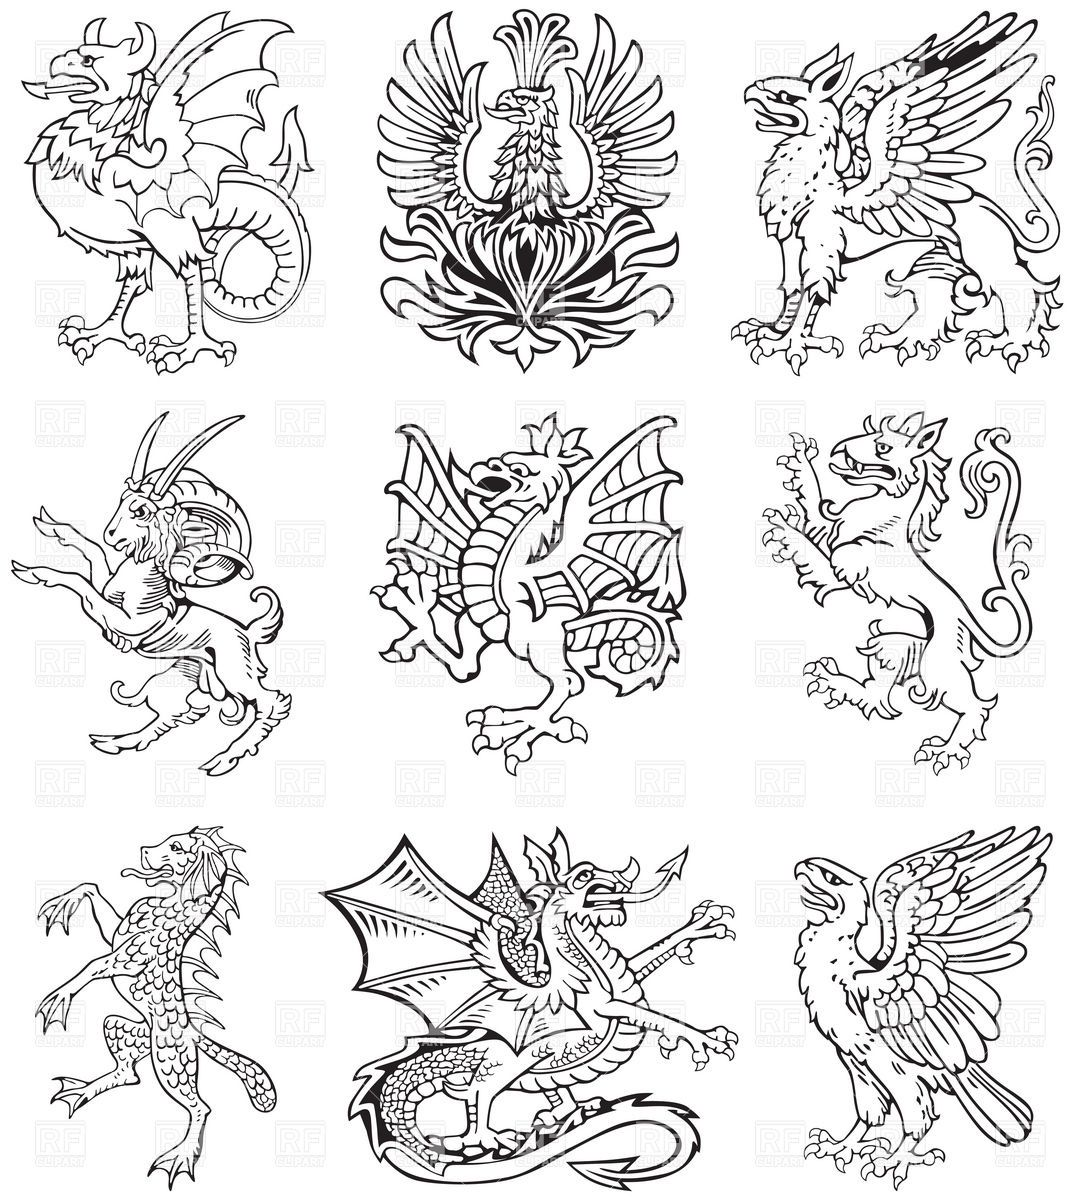 Mythological heraldic monsters gryphons and dragons download royalty heraldic symbols and their meanings bing images buycottarizona Gallery